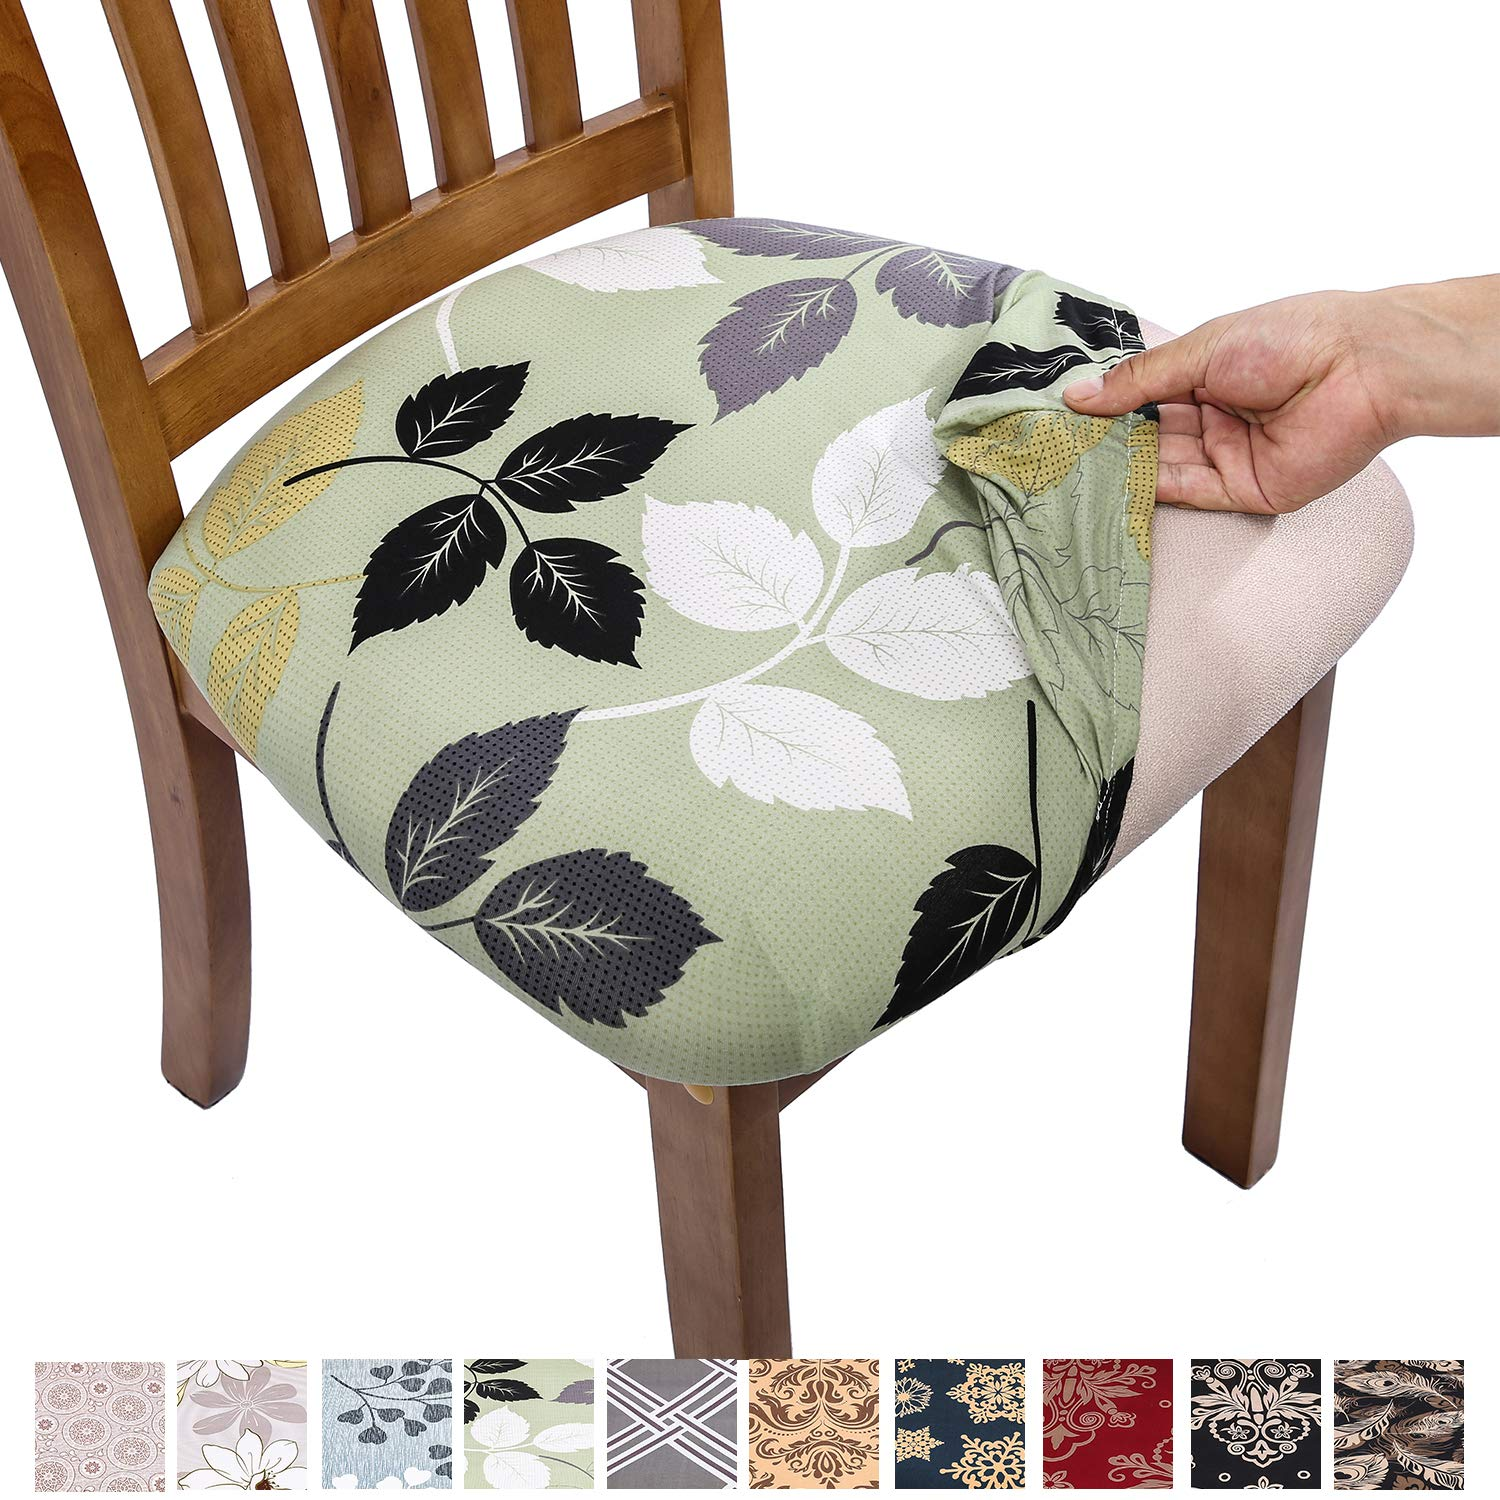 Marvelous Comqualife Stretch Printed Dining Chair Seat Covers Removable Washable Anti Dust Upholstered Chair Seat Cover For Dining Room Kitchen Office Set Alphanode Cool Chair Designs And Ideas Alphanodeonline